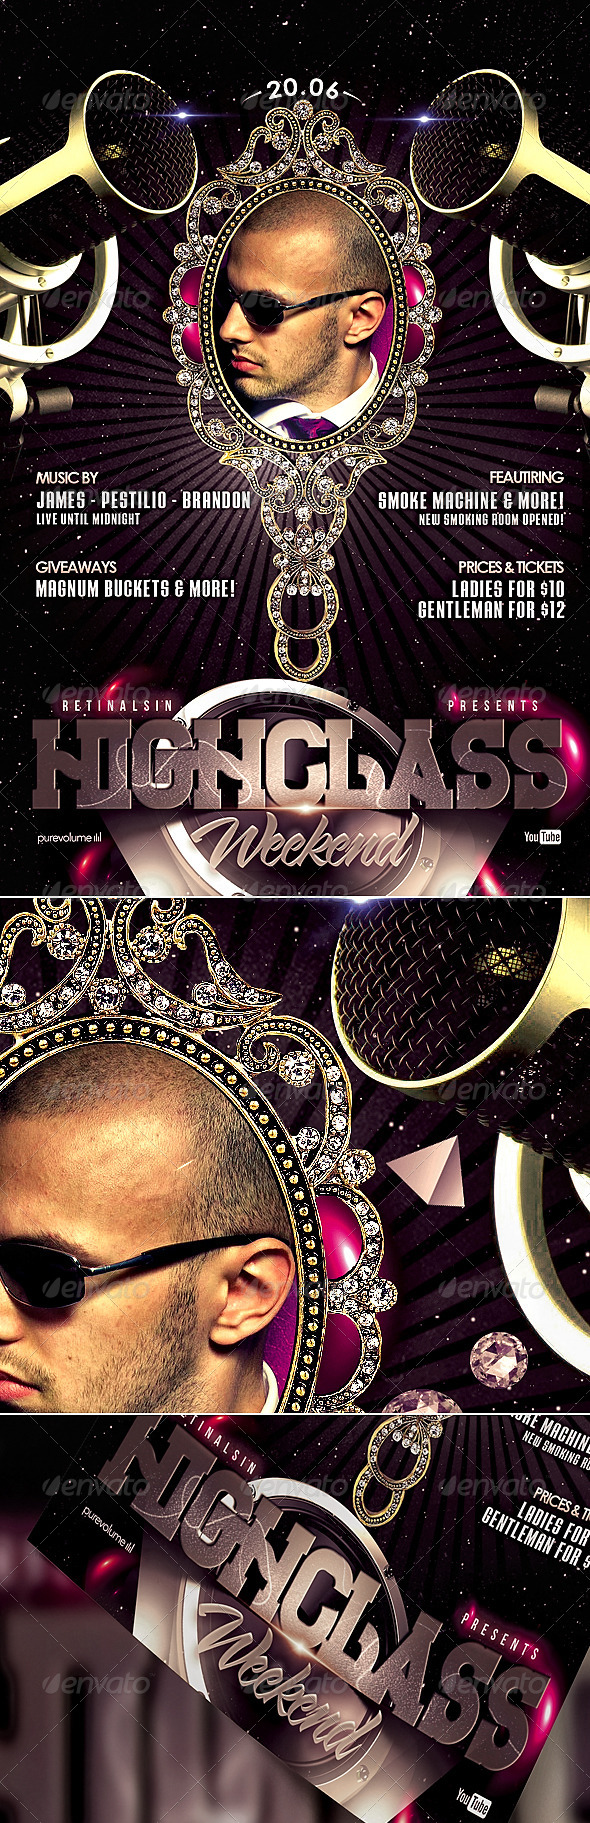 HighClass Weekend Flyer Template - Events Flyers